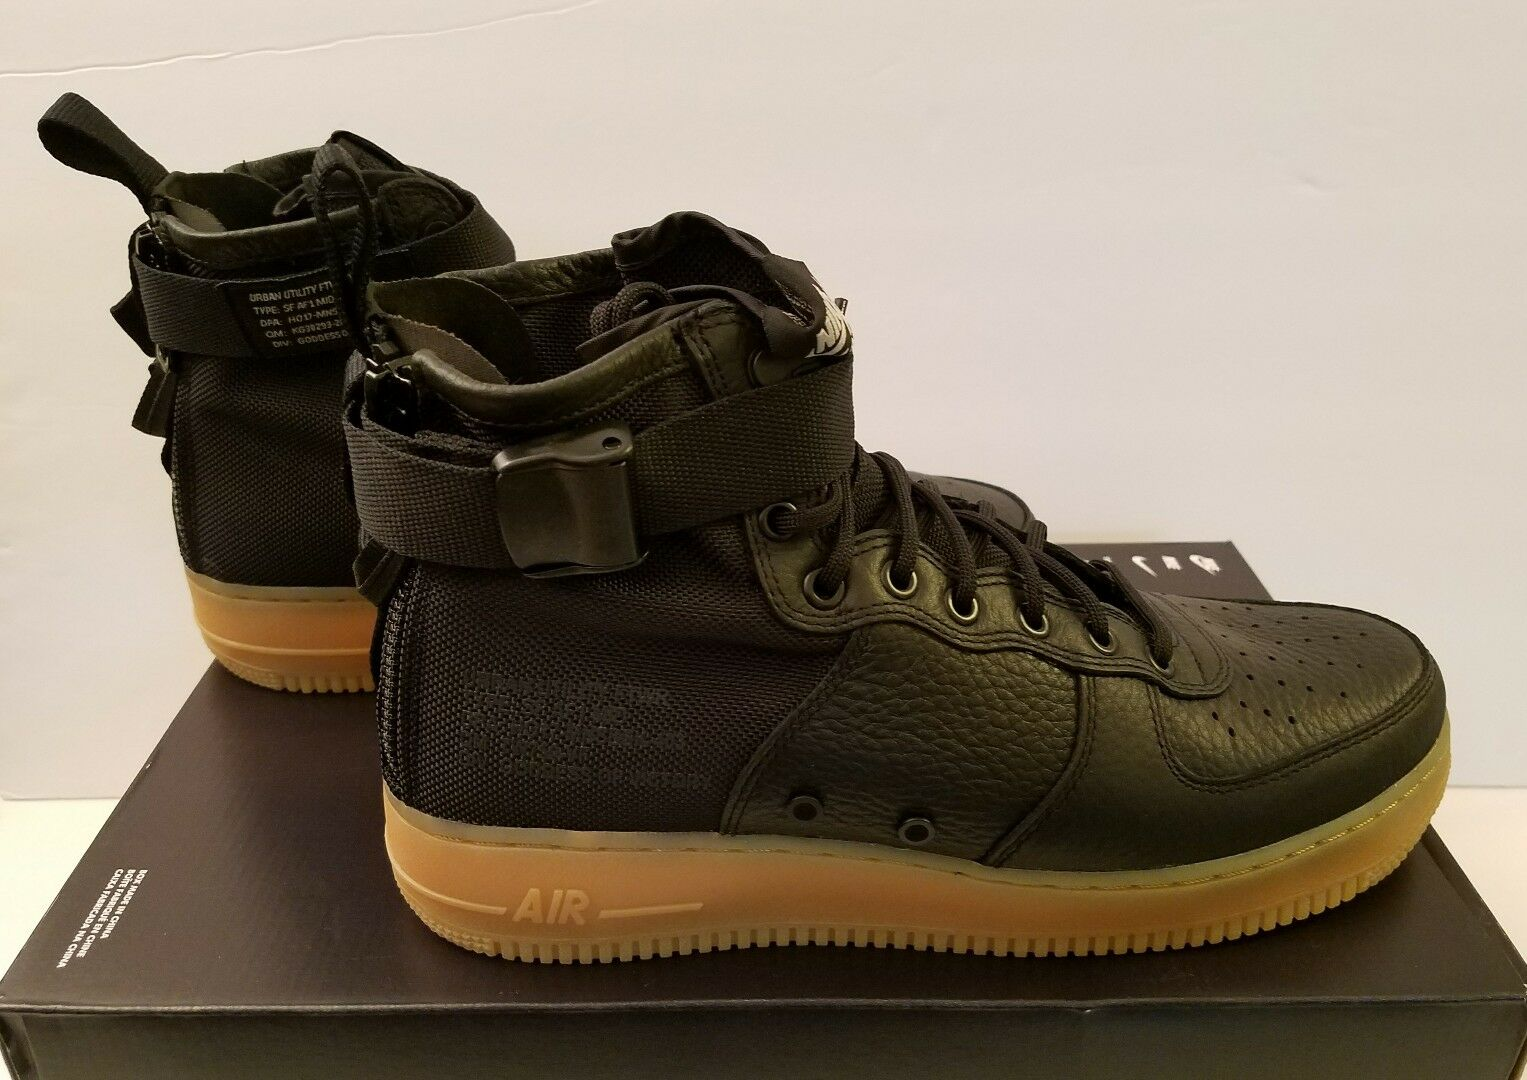 Nike Special Field Air Force 1 MID SFAF1 Black/Gum Size 10 - 917753 003